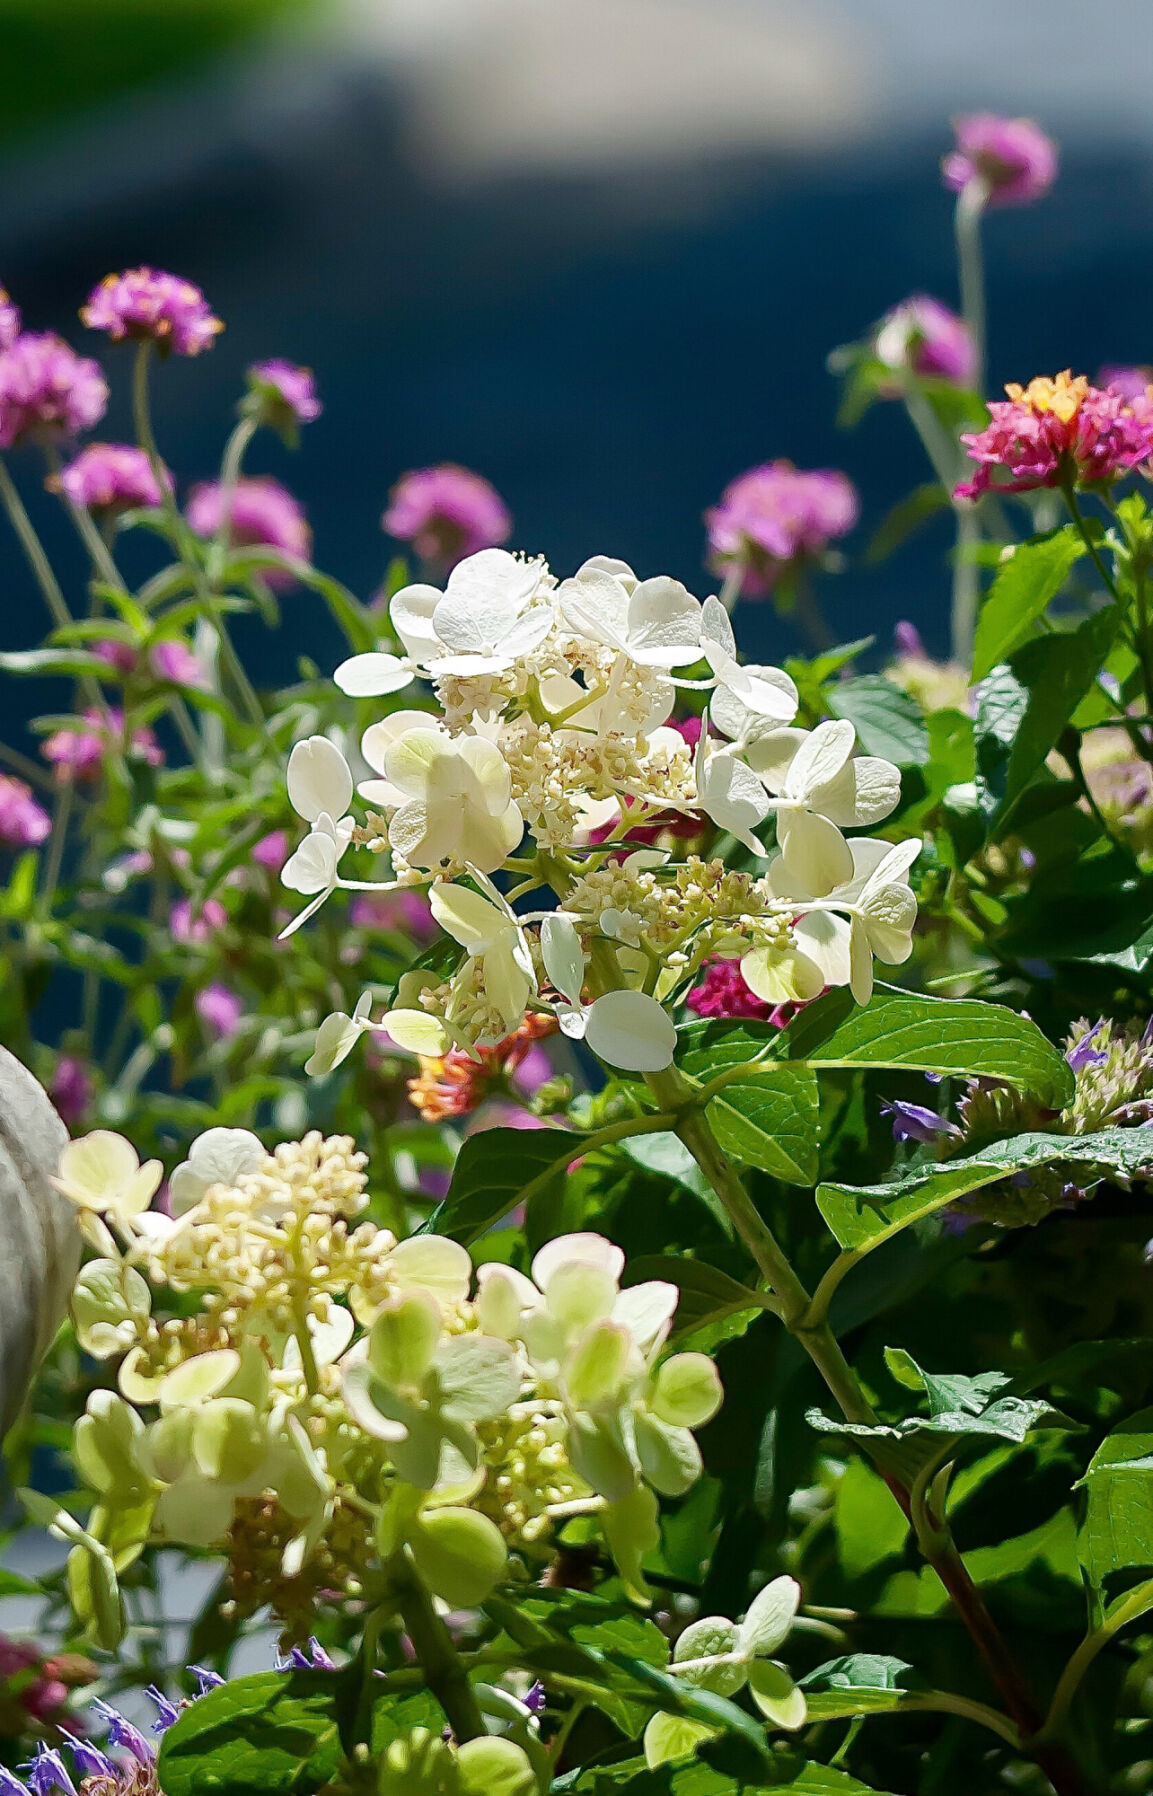 Panicle hydrangeas are great plant partners